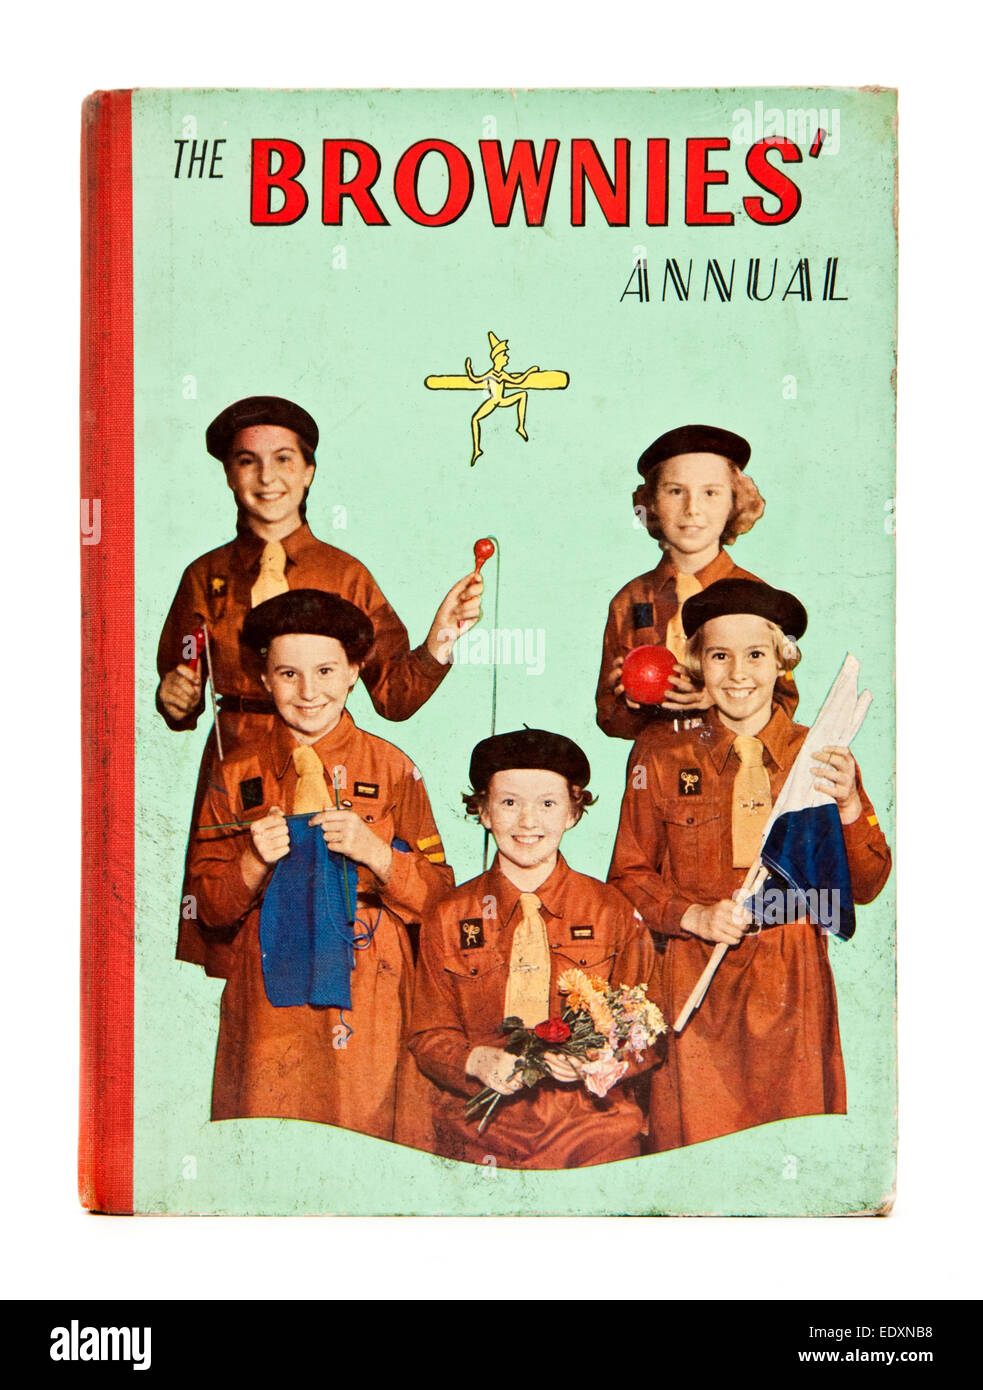 1960 copy of 'The Brownies' Annual'. The Brownies are a British girl guiding association founded by - Stock Image